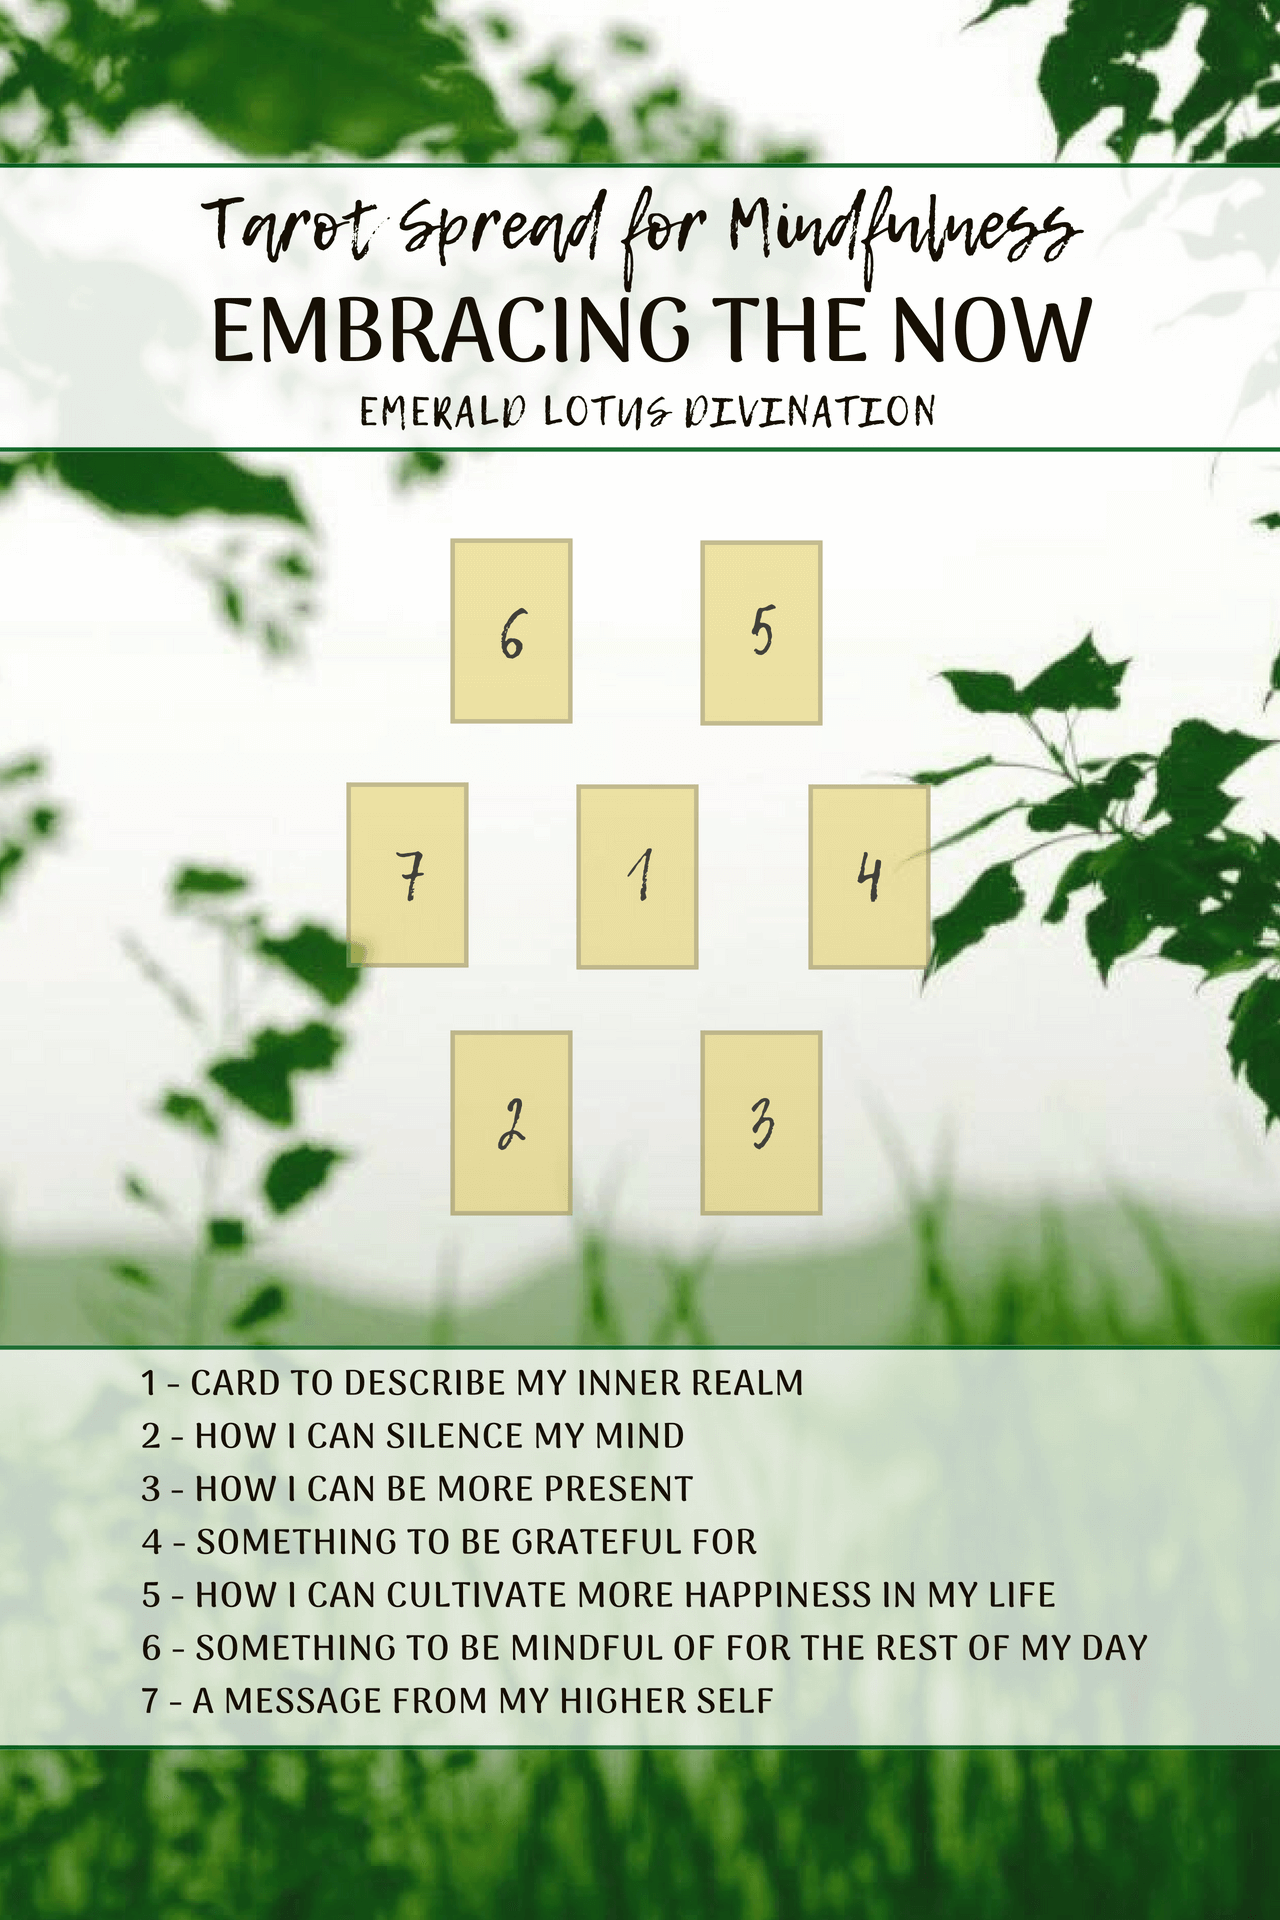 embracing-the-now-tarot-spread-for-mindfulness-2.png